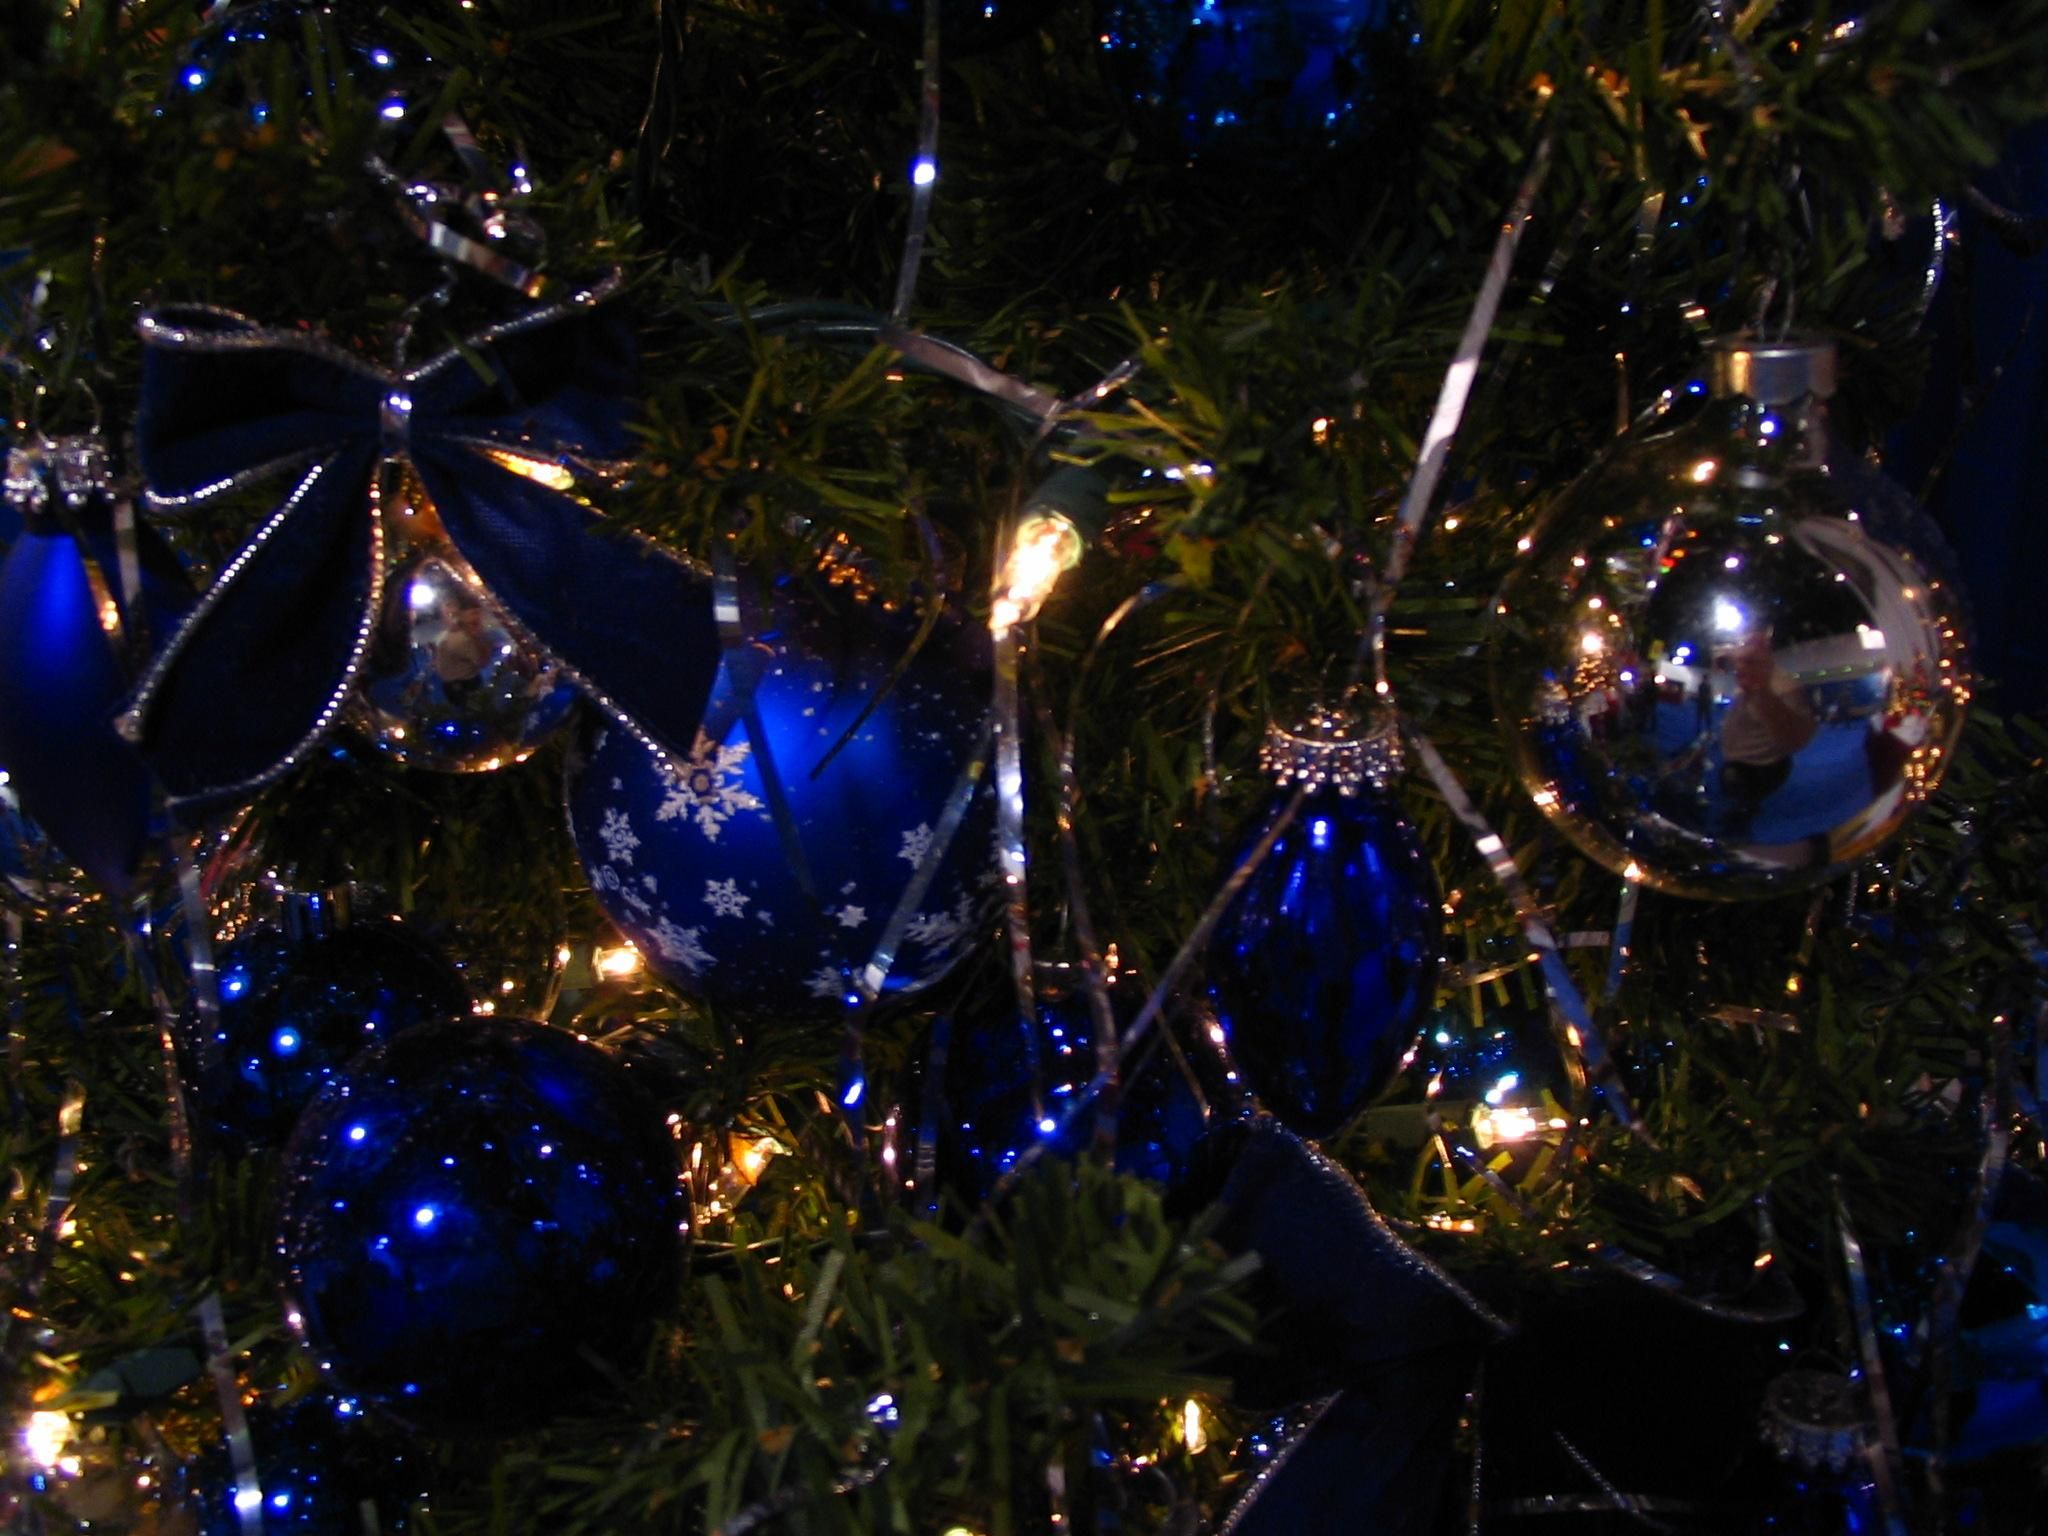 Glass decorations - File Christmas Decorations With Blue Glass Ornaments Jpg